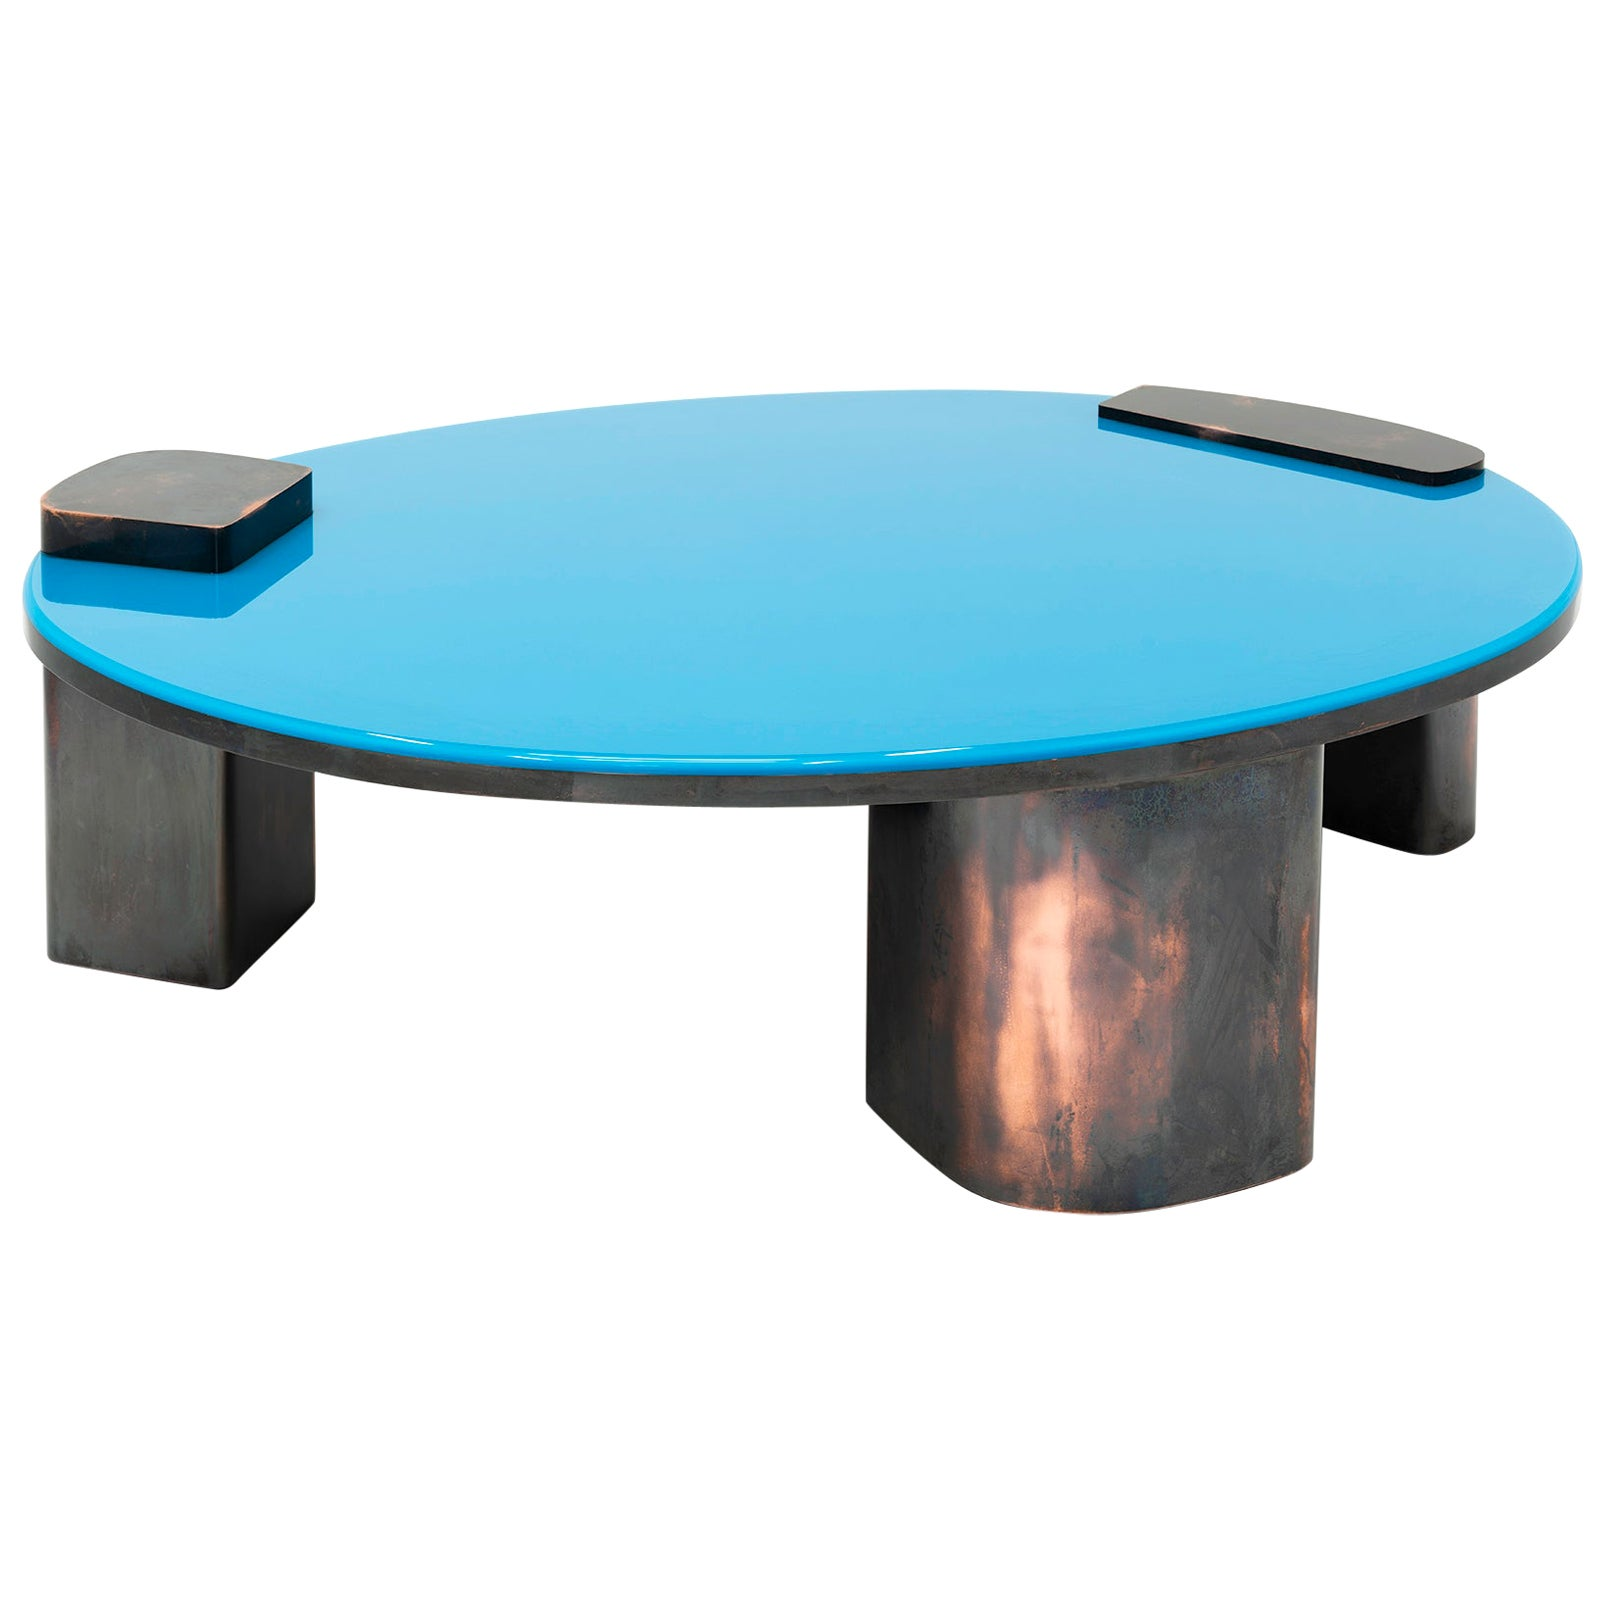 Blue Moon MMXIX, 21st Century Modern Copper and Blue Resin Oval Coffee Table